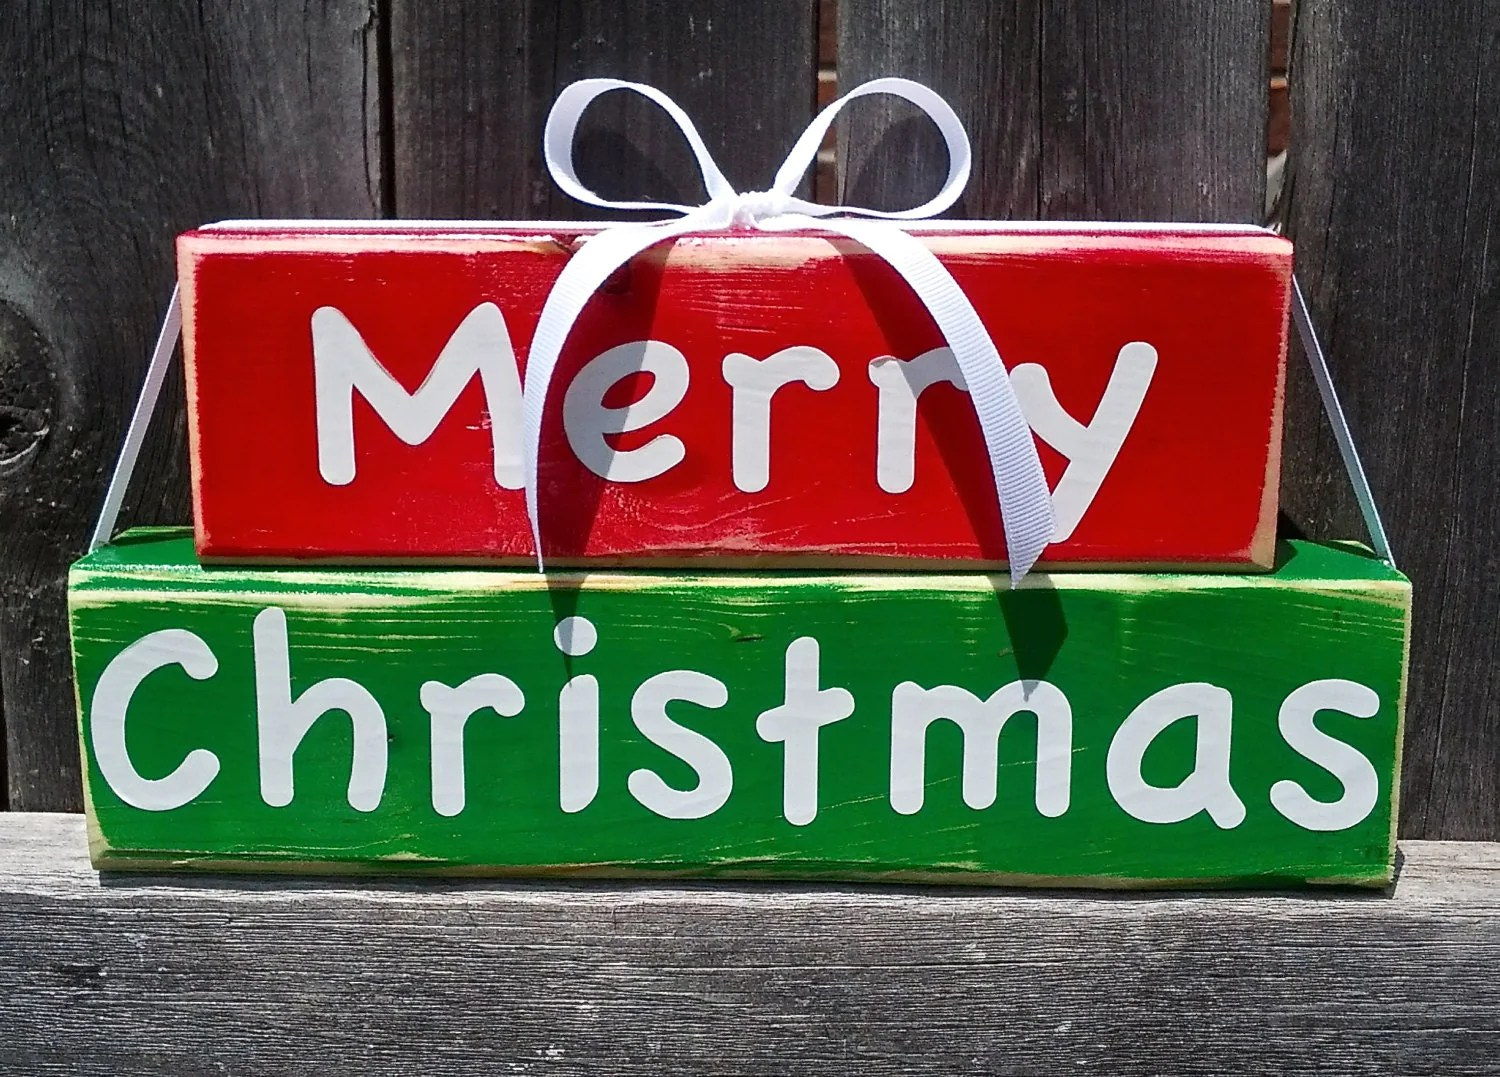 Merry Christmas Fun And Cute Wood Block Decor Sign By